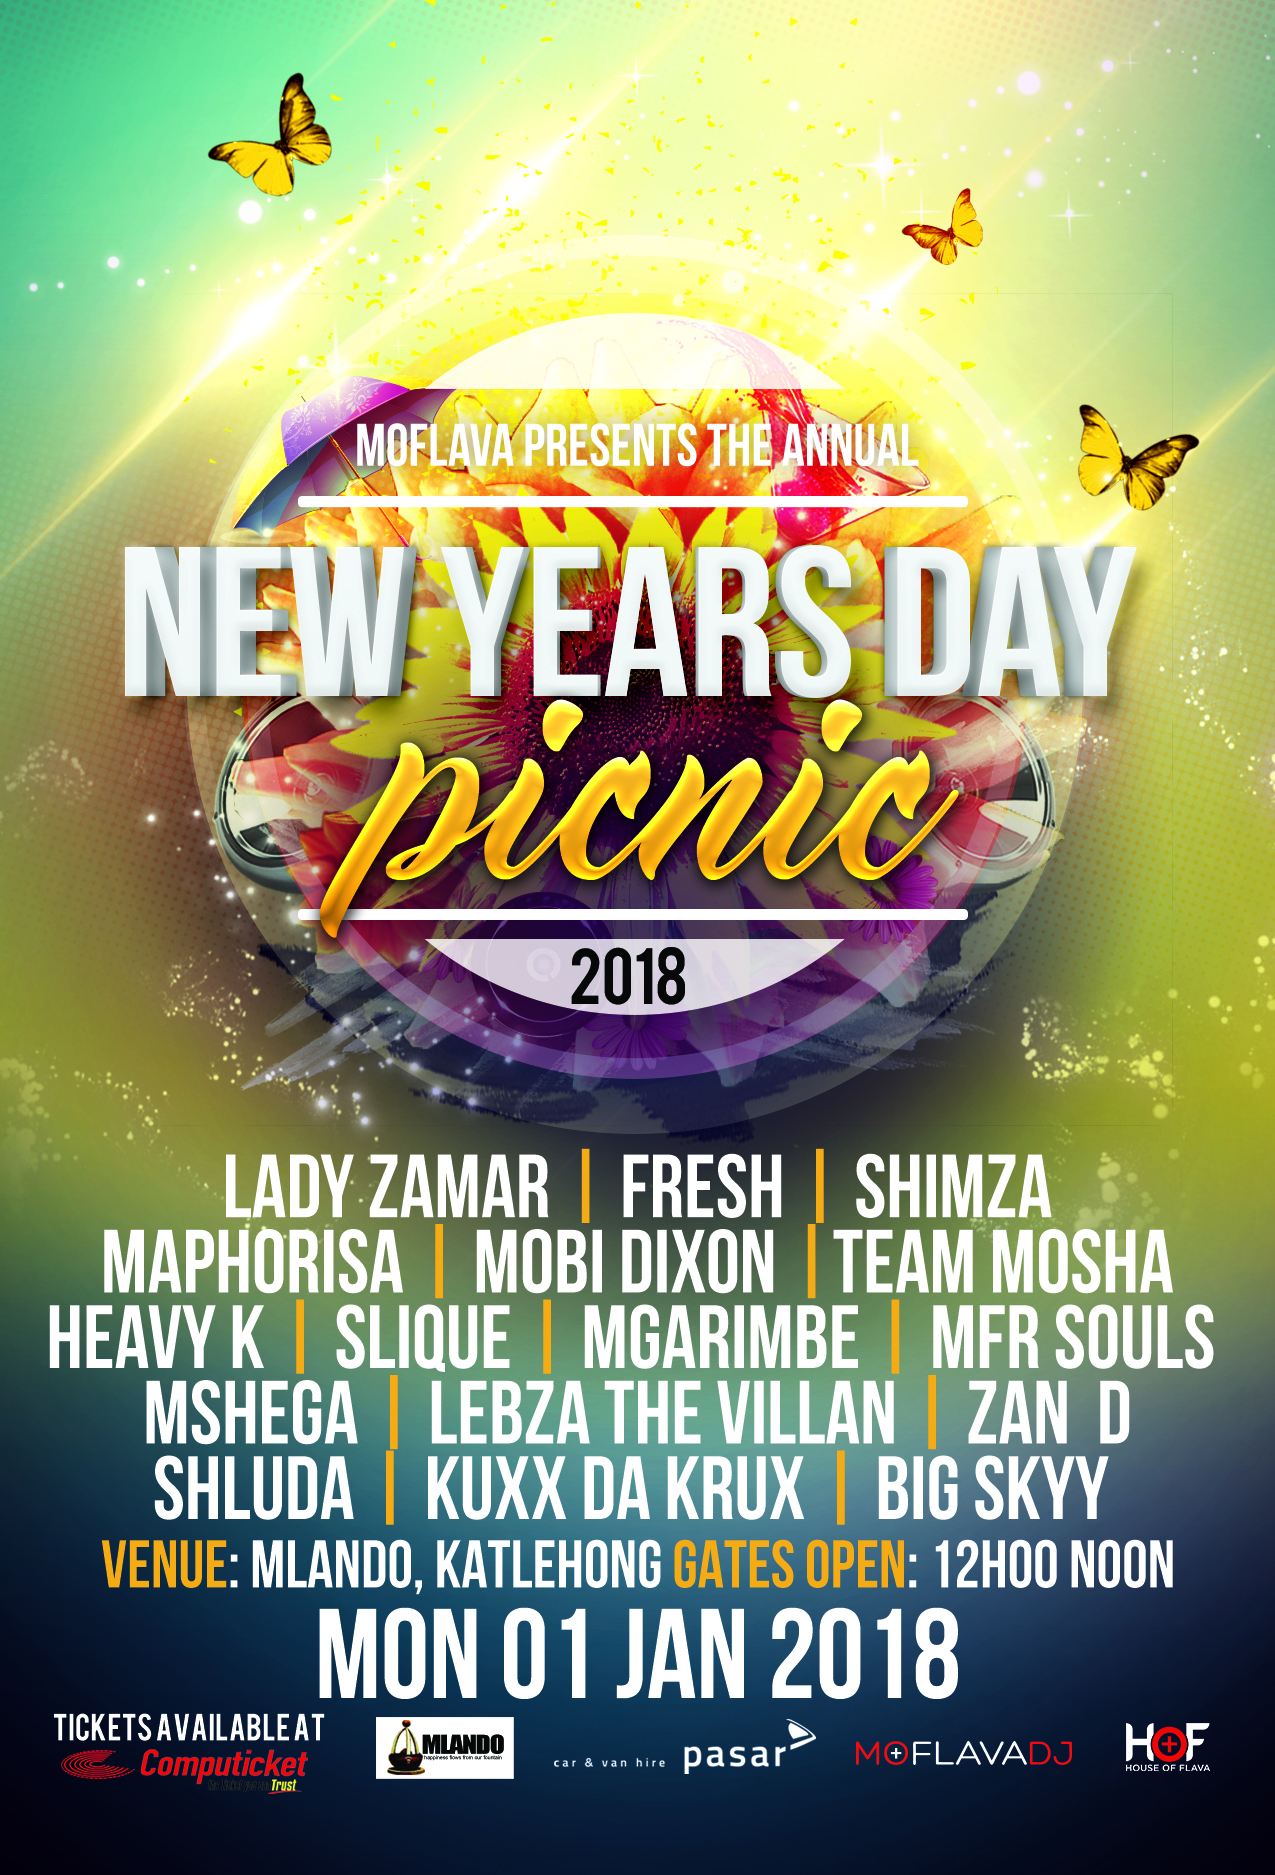 All Systems Go For Mo Flava's 9th Annual New Year's Day